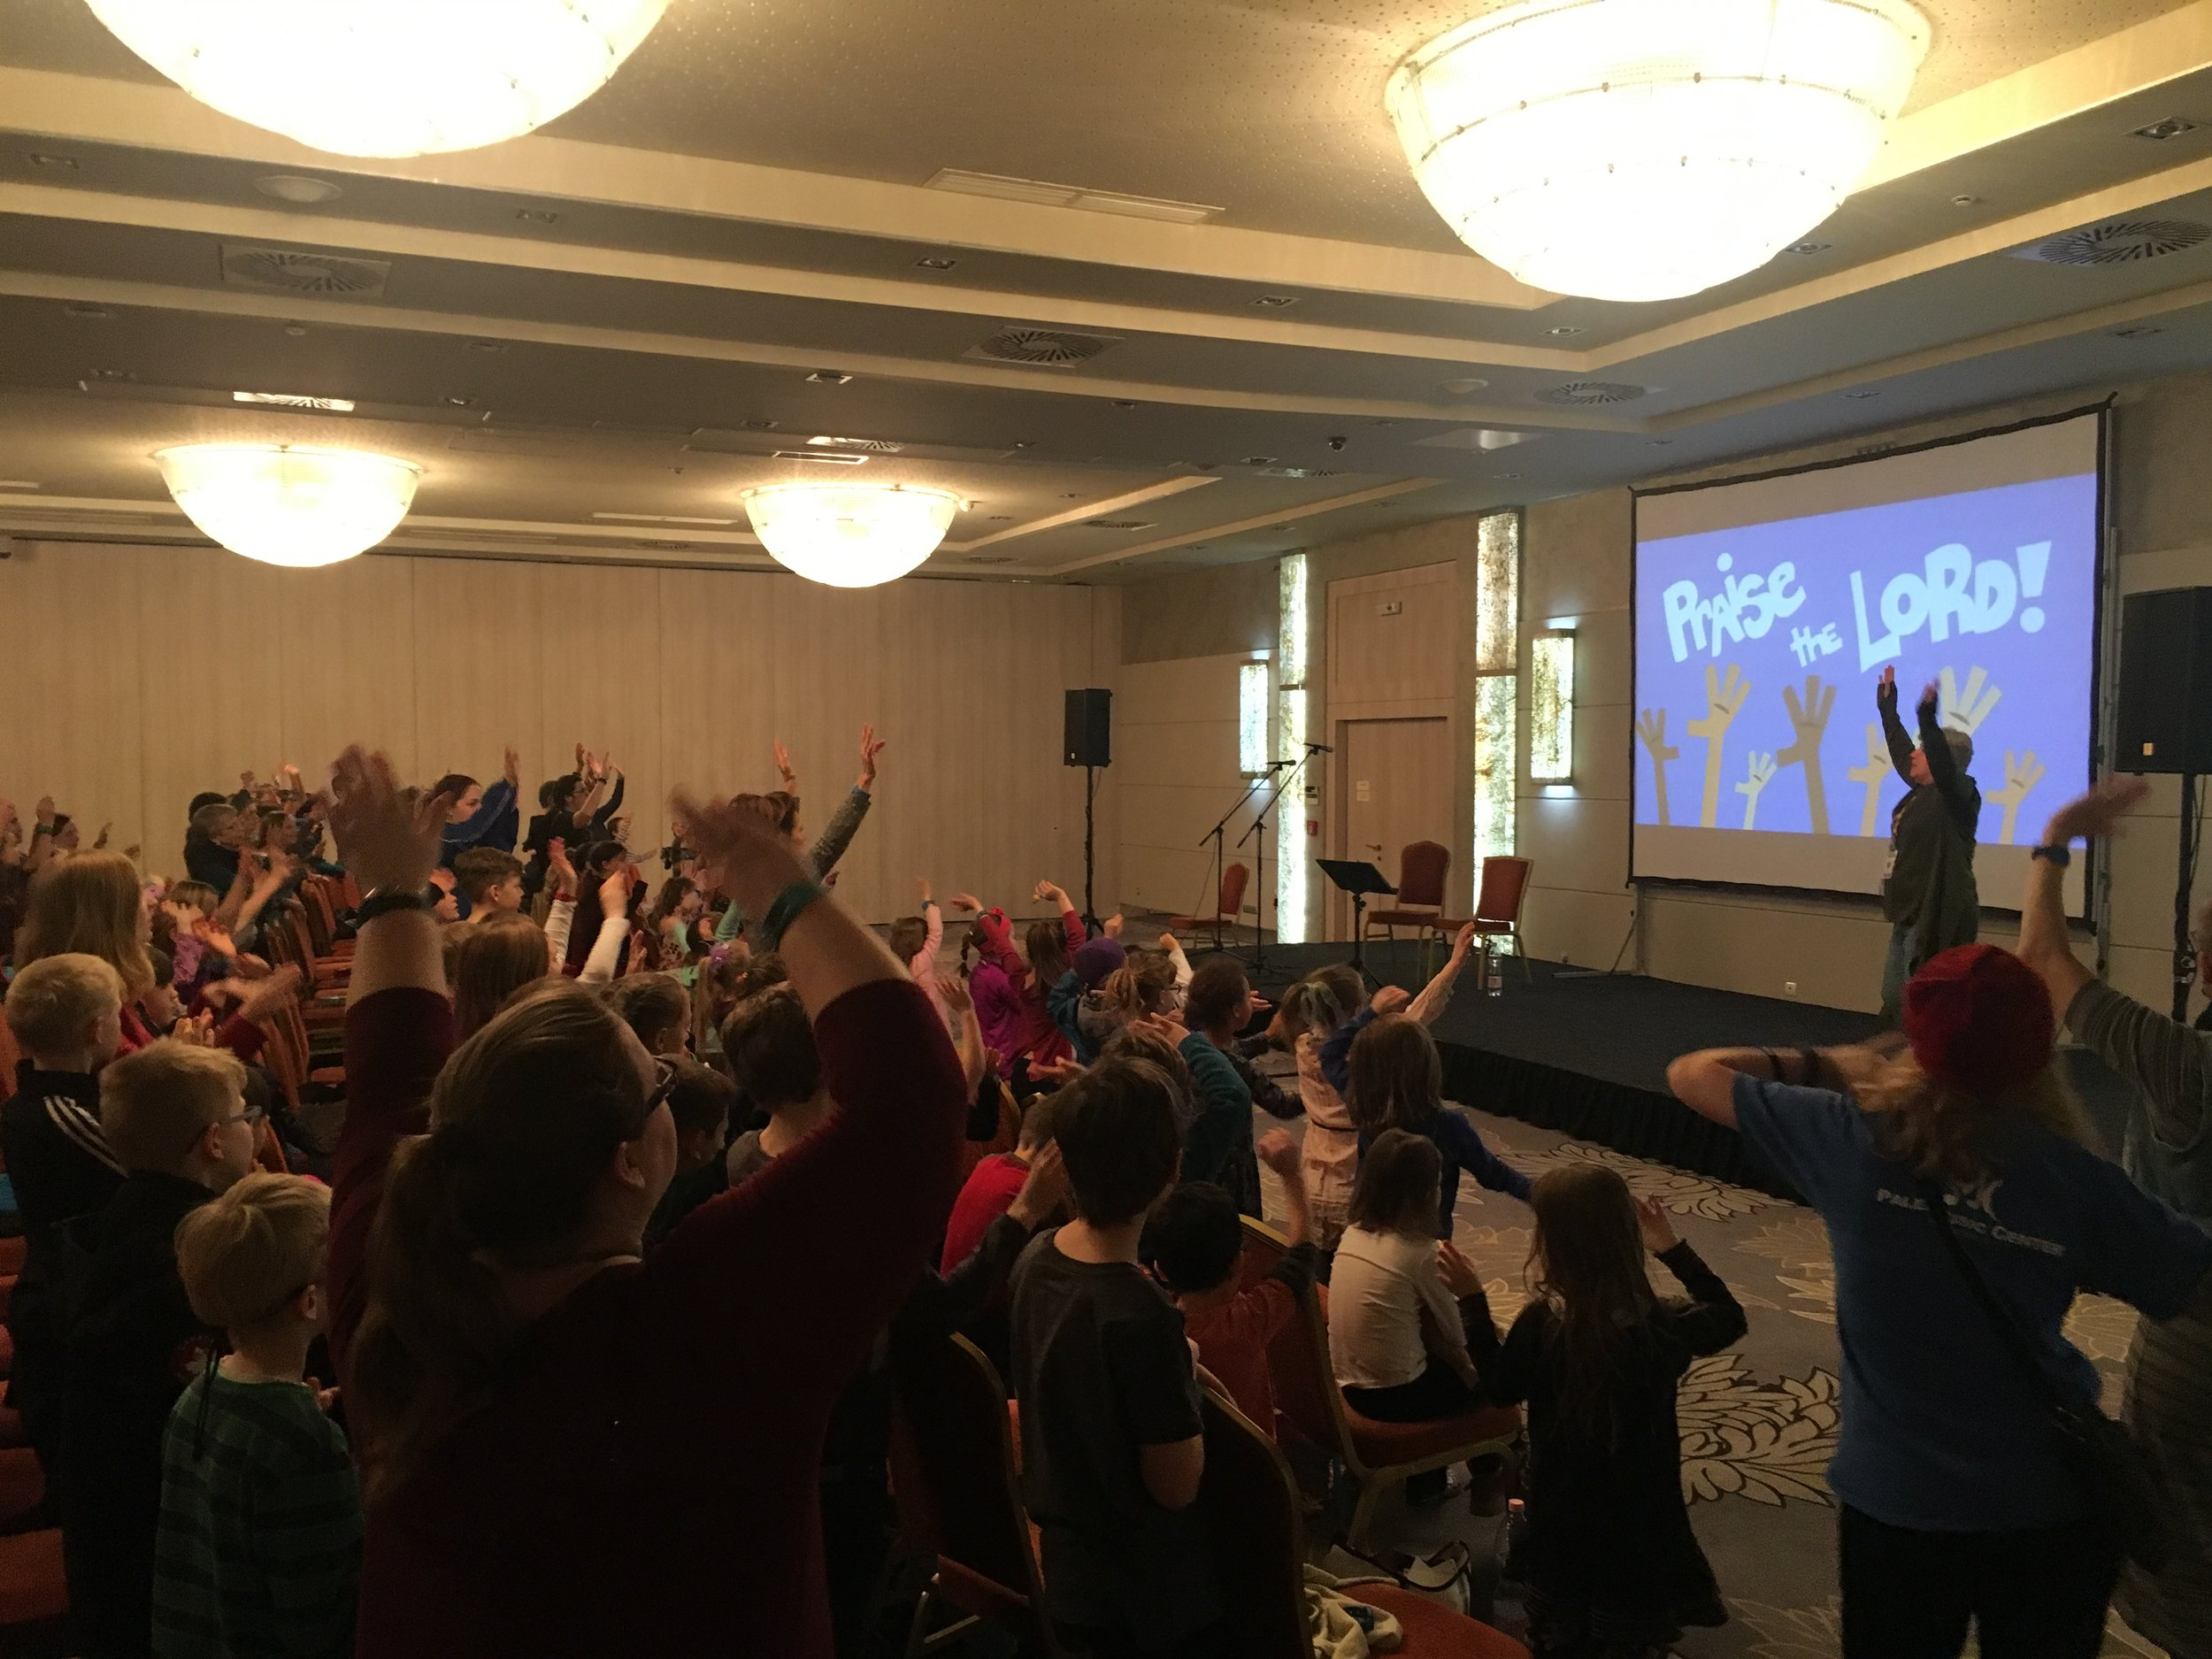 It was really sweet for the kids to spend time worshiping Jesus with other MKs.